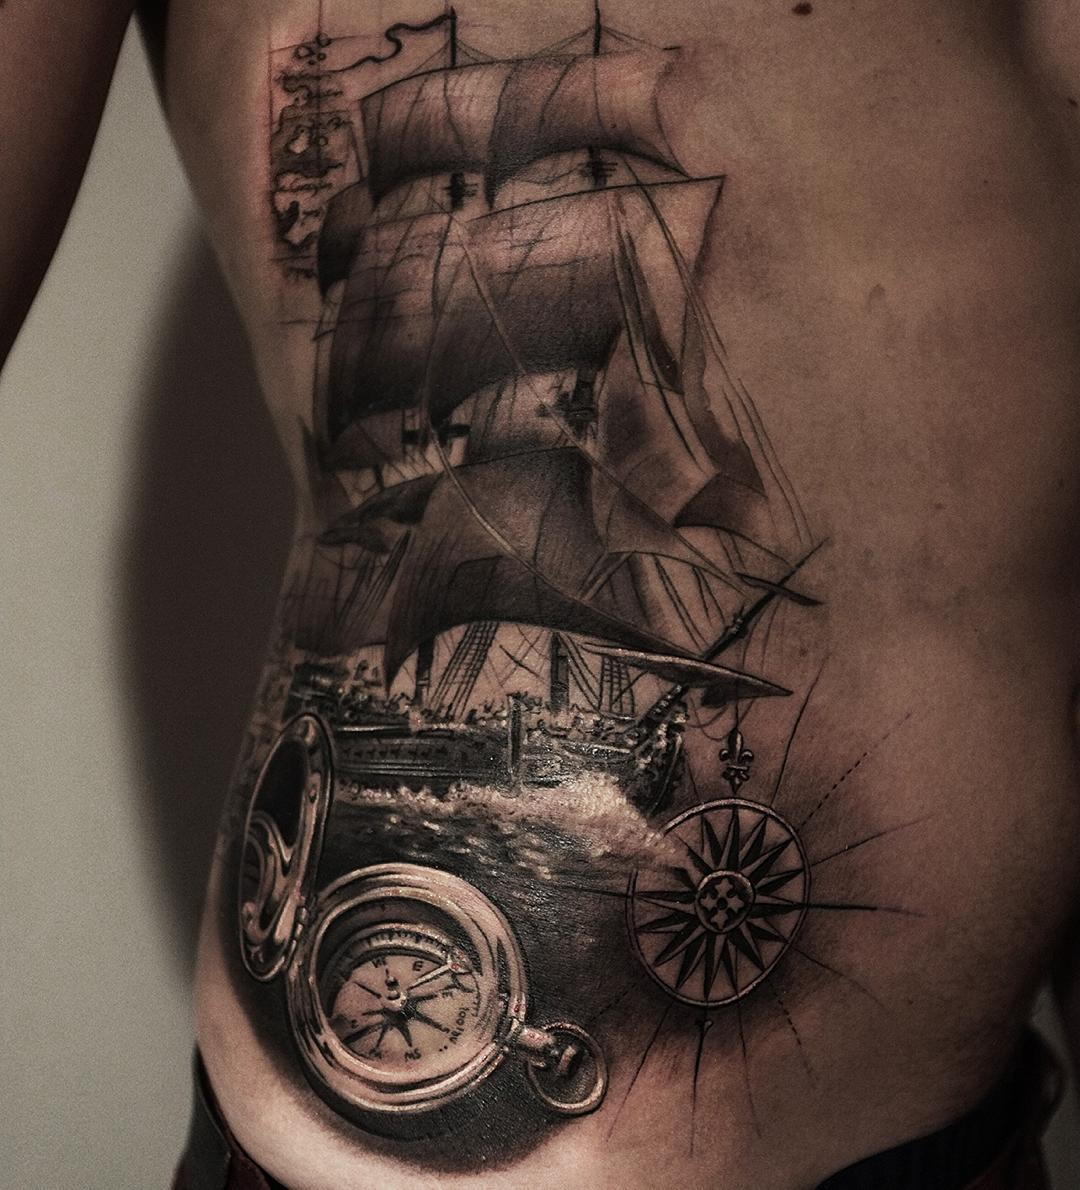 great nautical tattoo plot -sailing ship and all ather nautical elements here are awesome